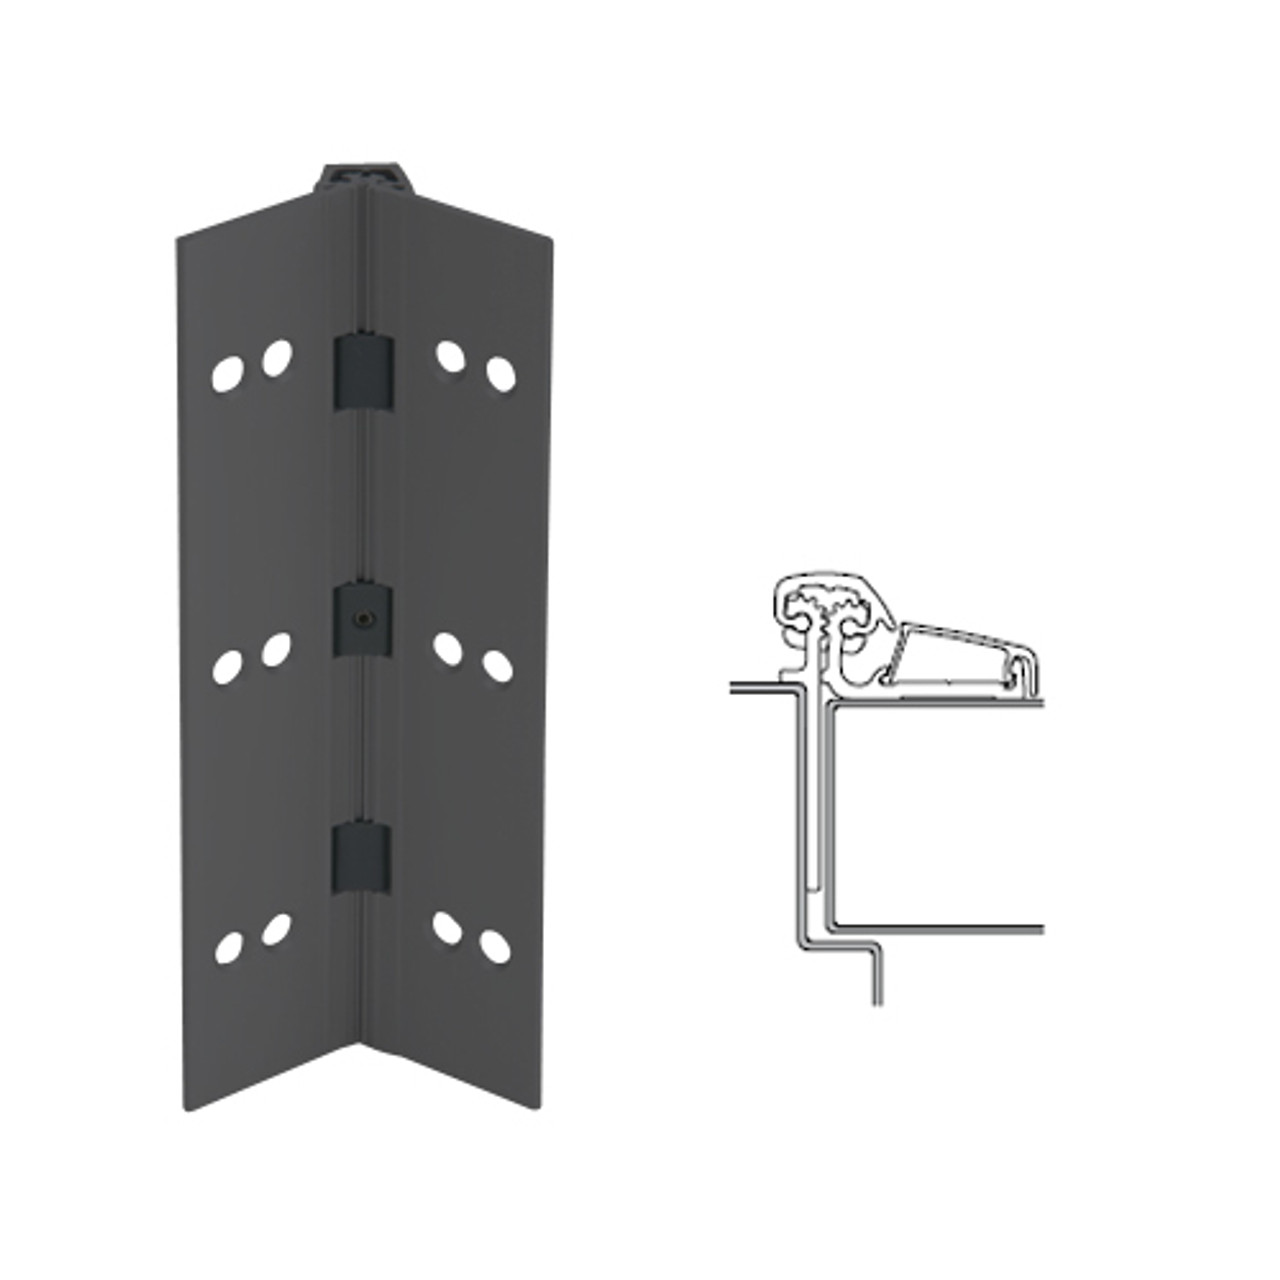 053XY-315AN-85-SECWDWD IVES Adjustable Half Surface Continuous Geared Hinges with Security Screws - Hex Pin Drive in Anodized Black